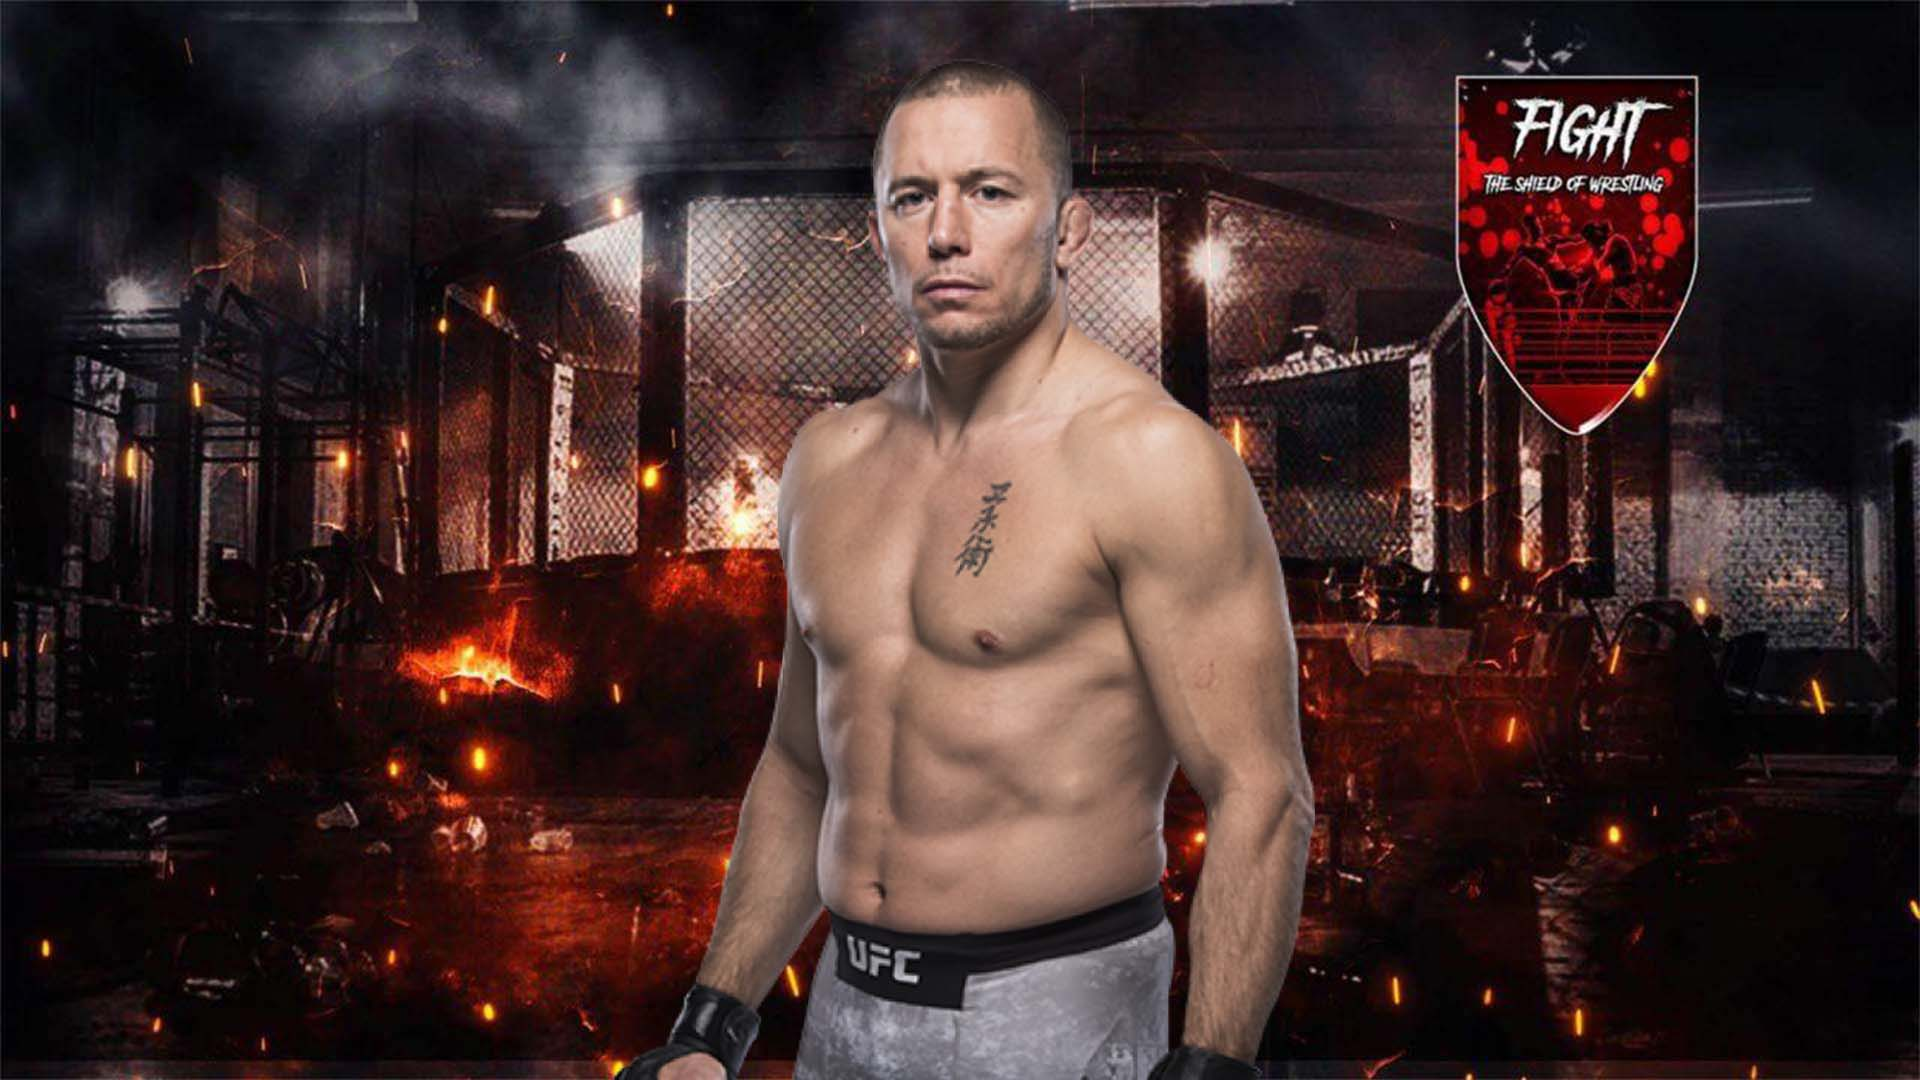 Georges St-Pierre: Odio combattere, ma amo vincere